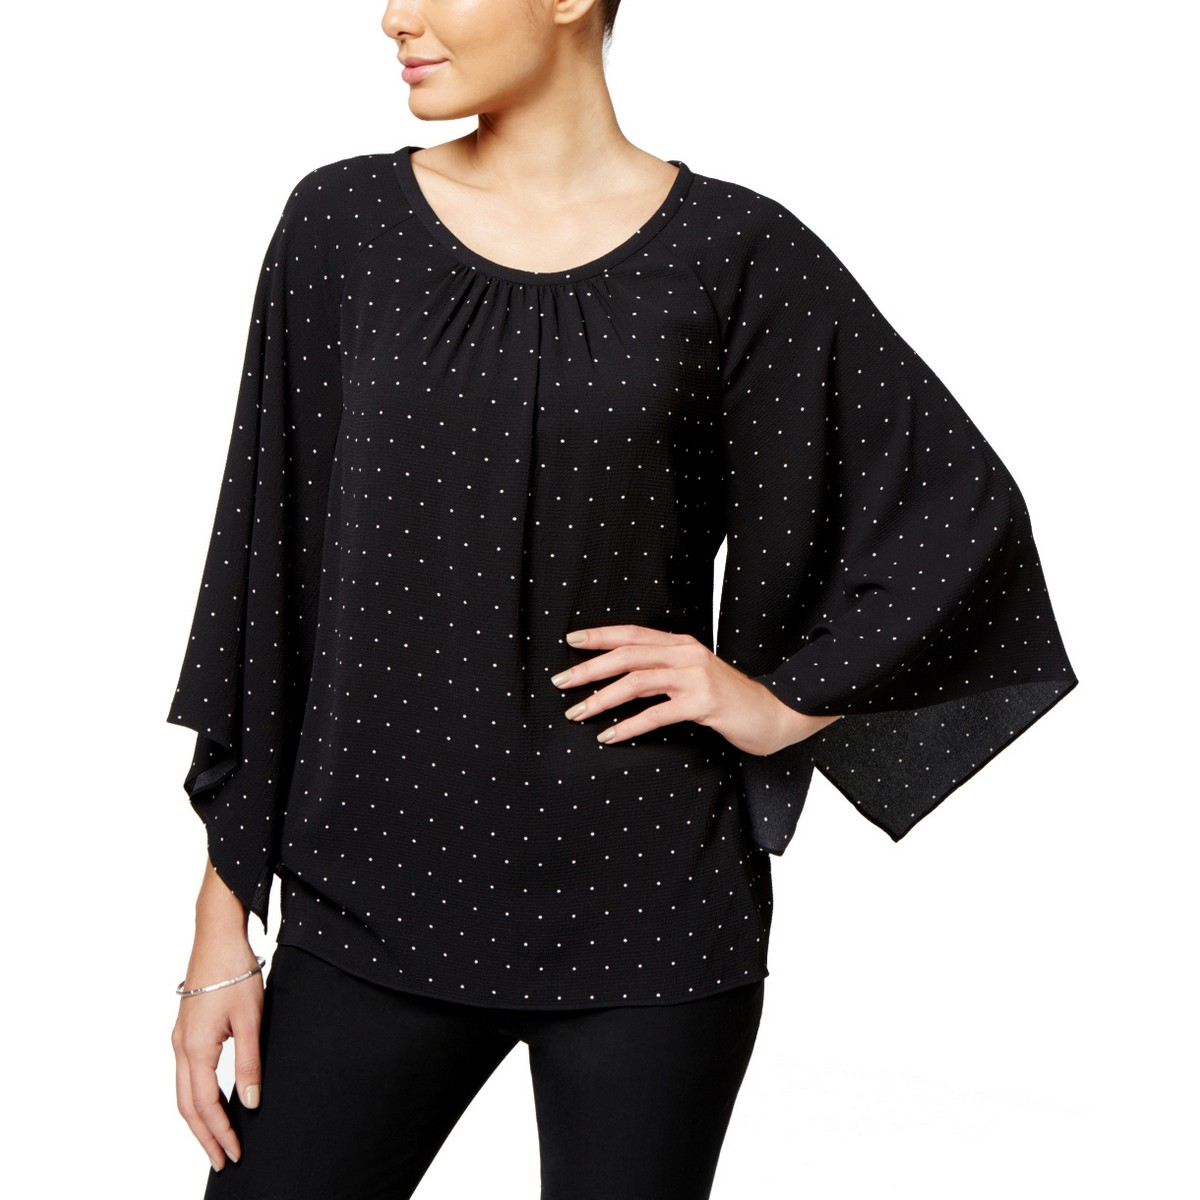 VINCE-CAMUTO-Women-039-s-Black-Polka-Dot-Pleated-Neckline-Blouse-Shirt-Top-TEDO